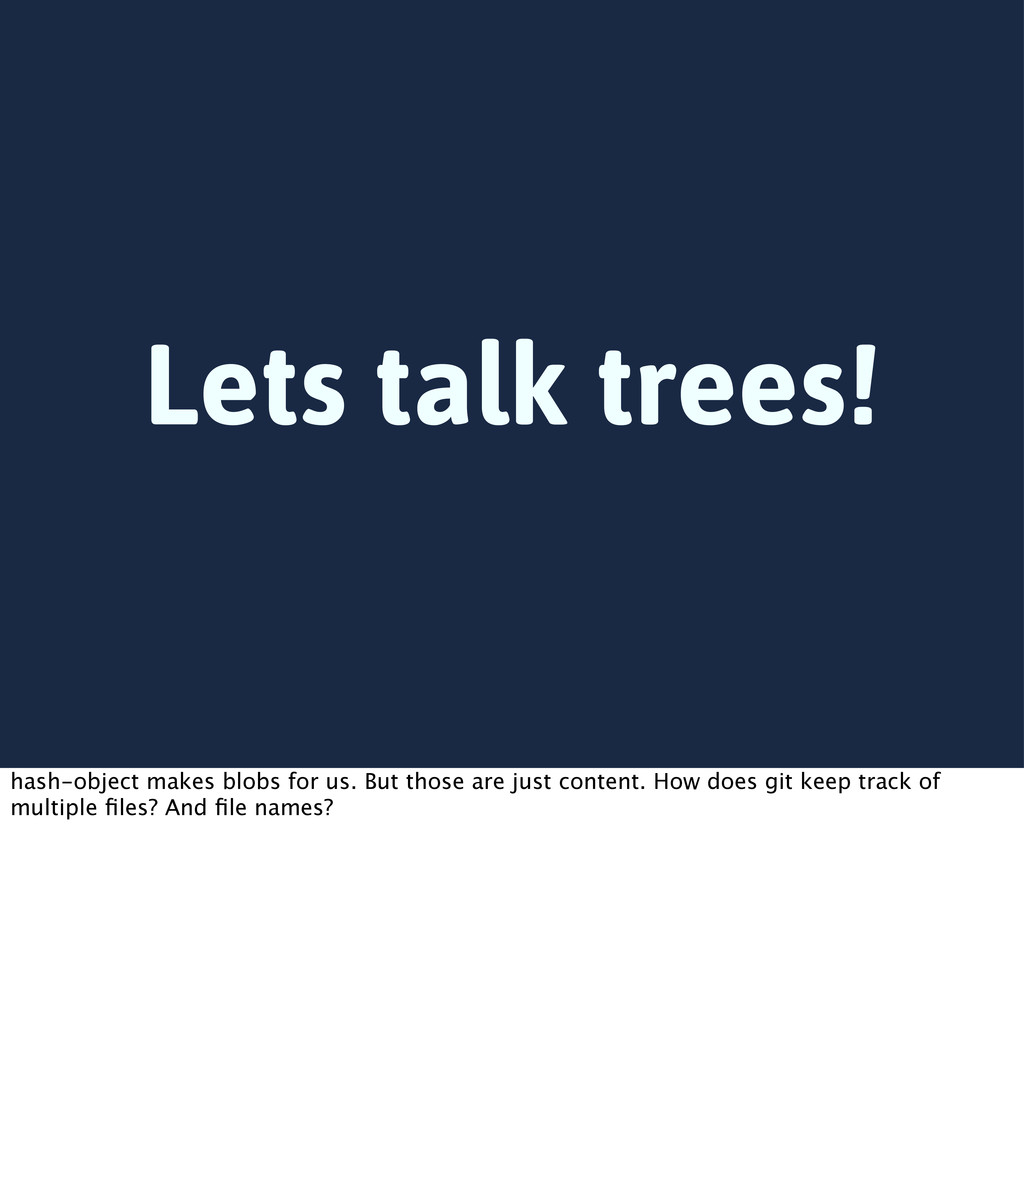 Lets talk trees! hash-object makes blobs for us...